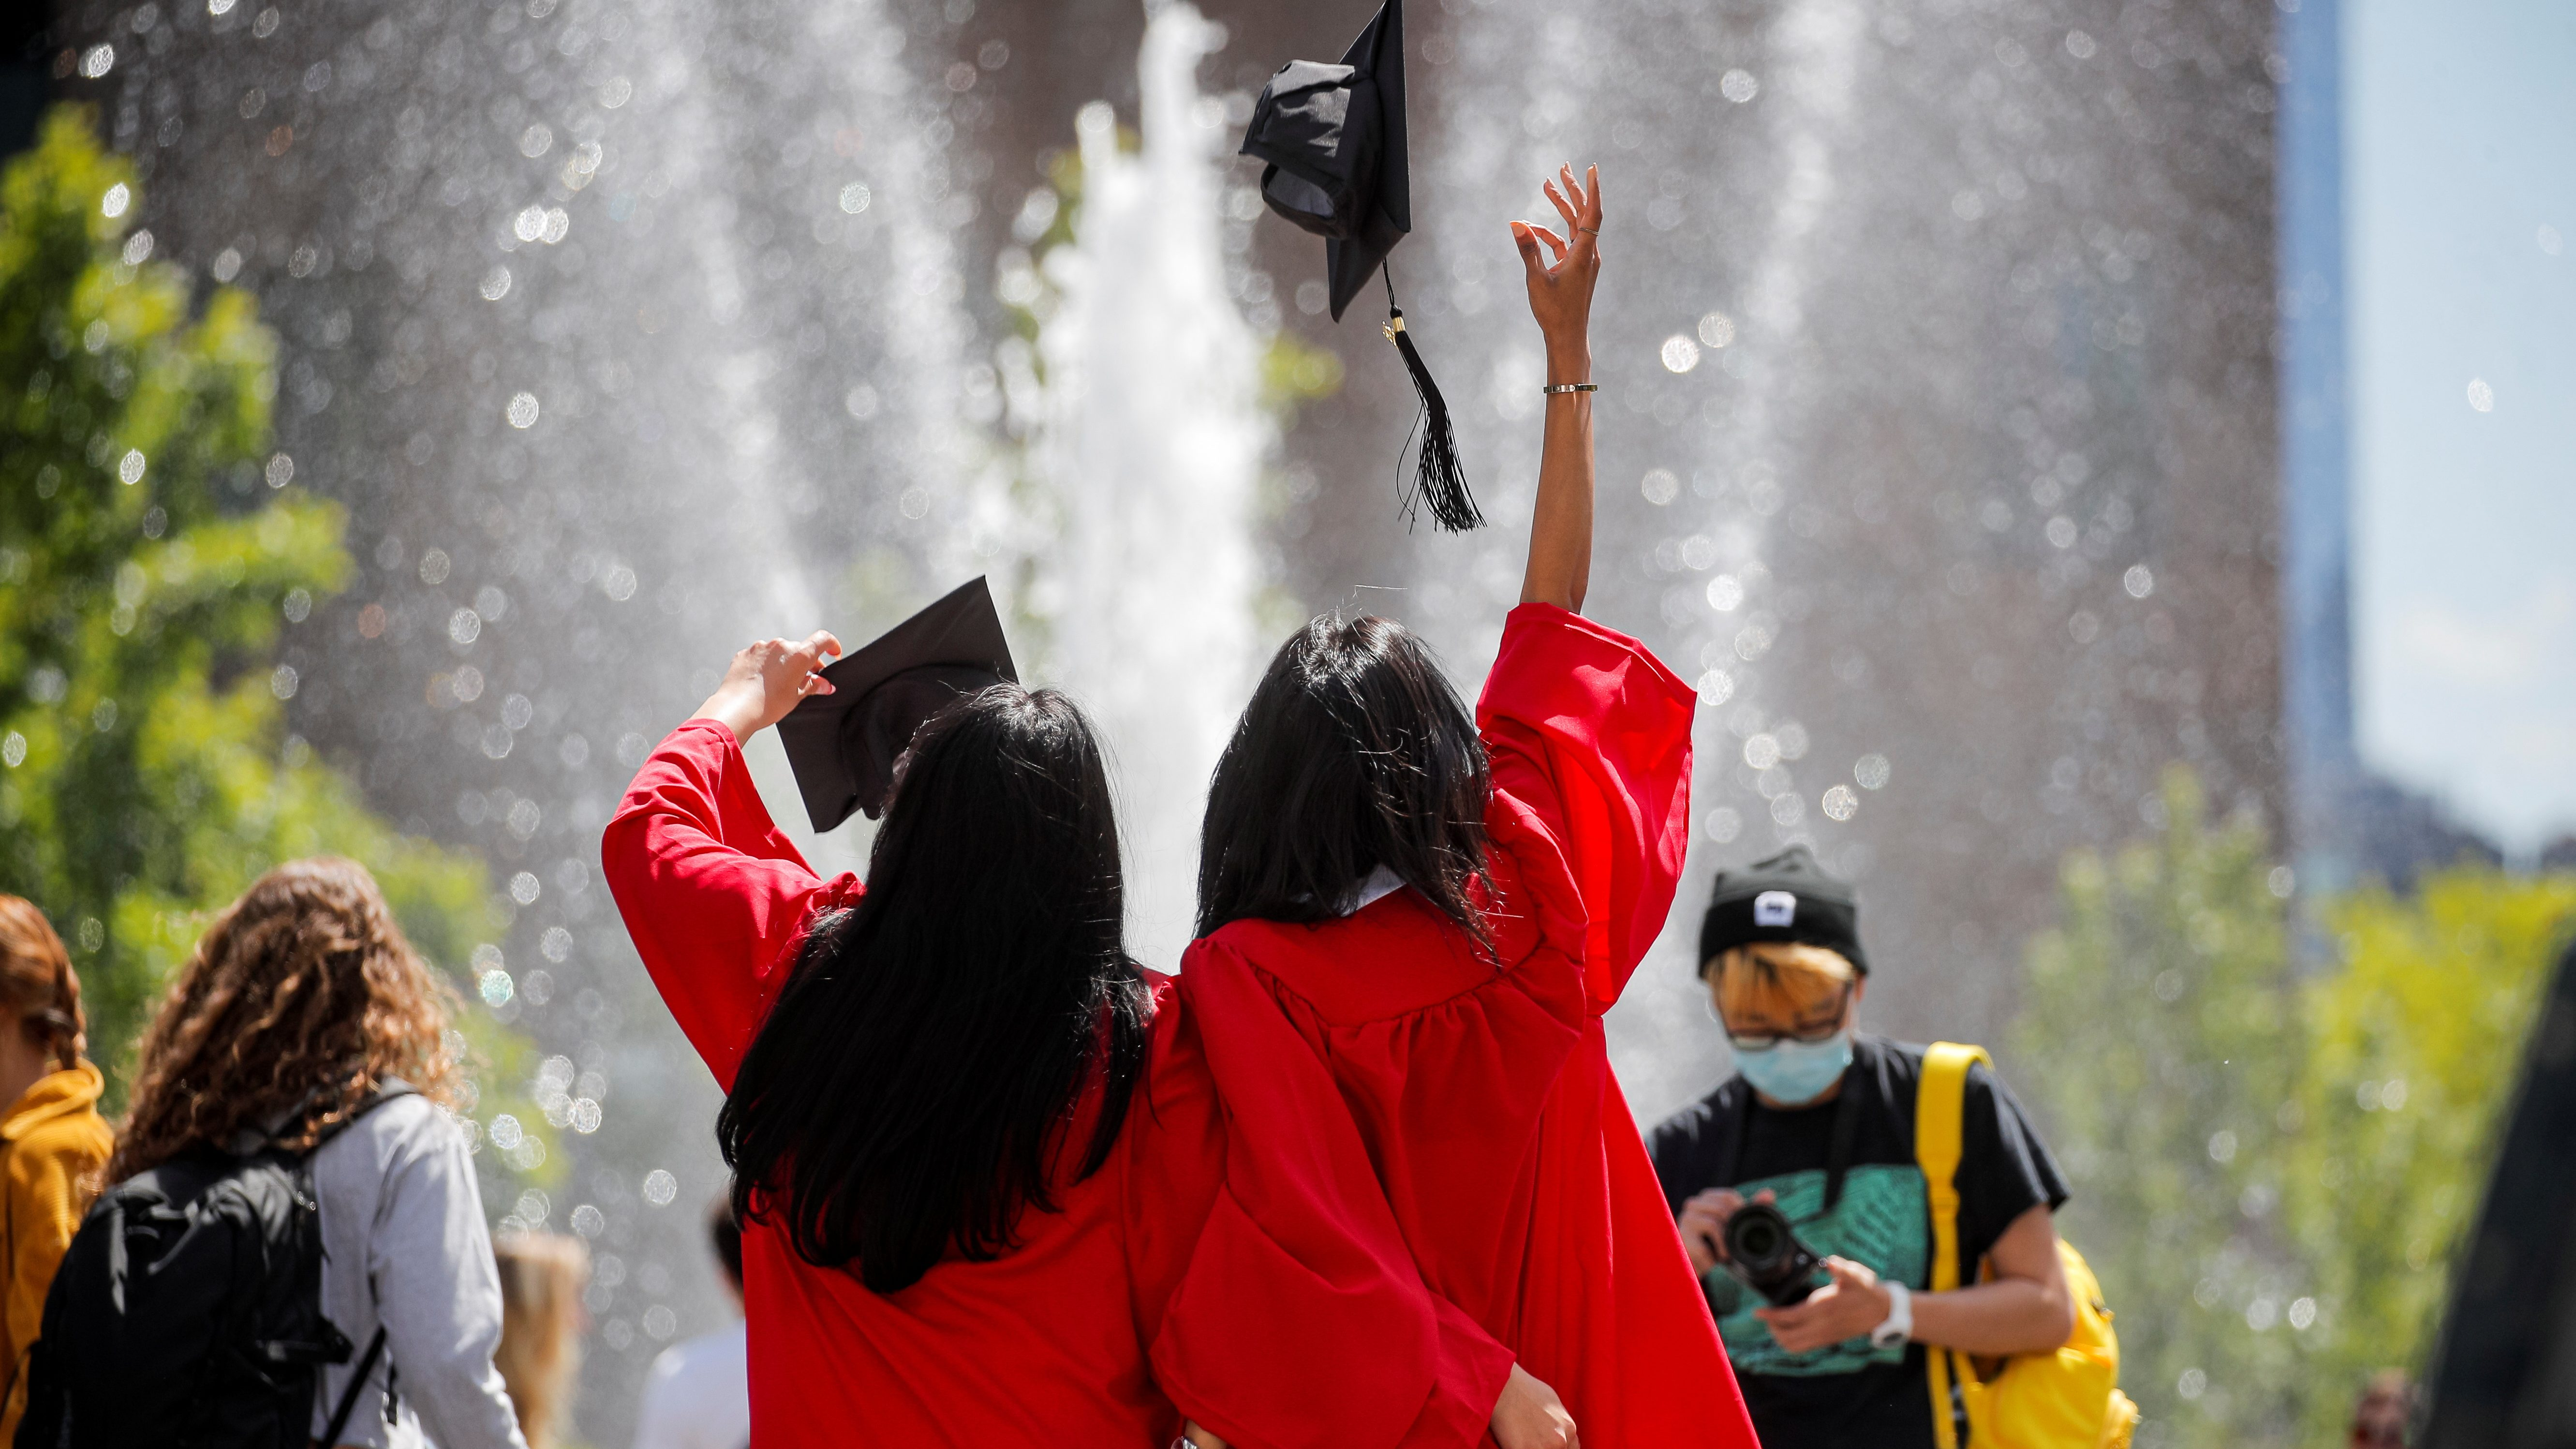 Graduates of The New School pose together in Washington Square Park in New York